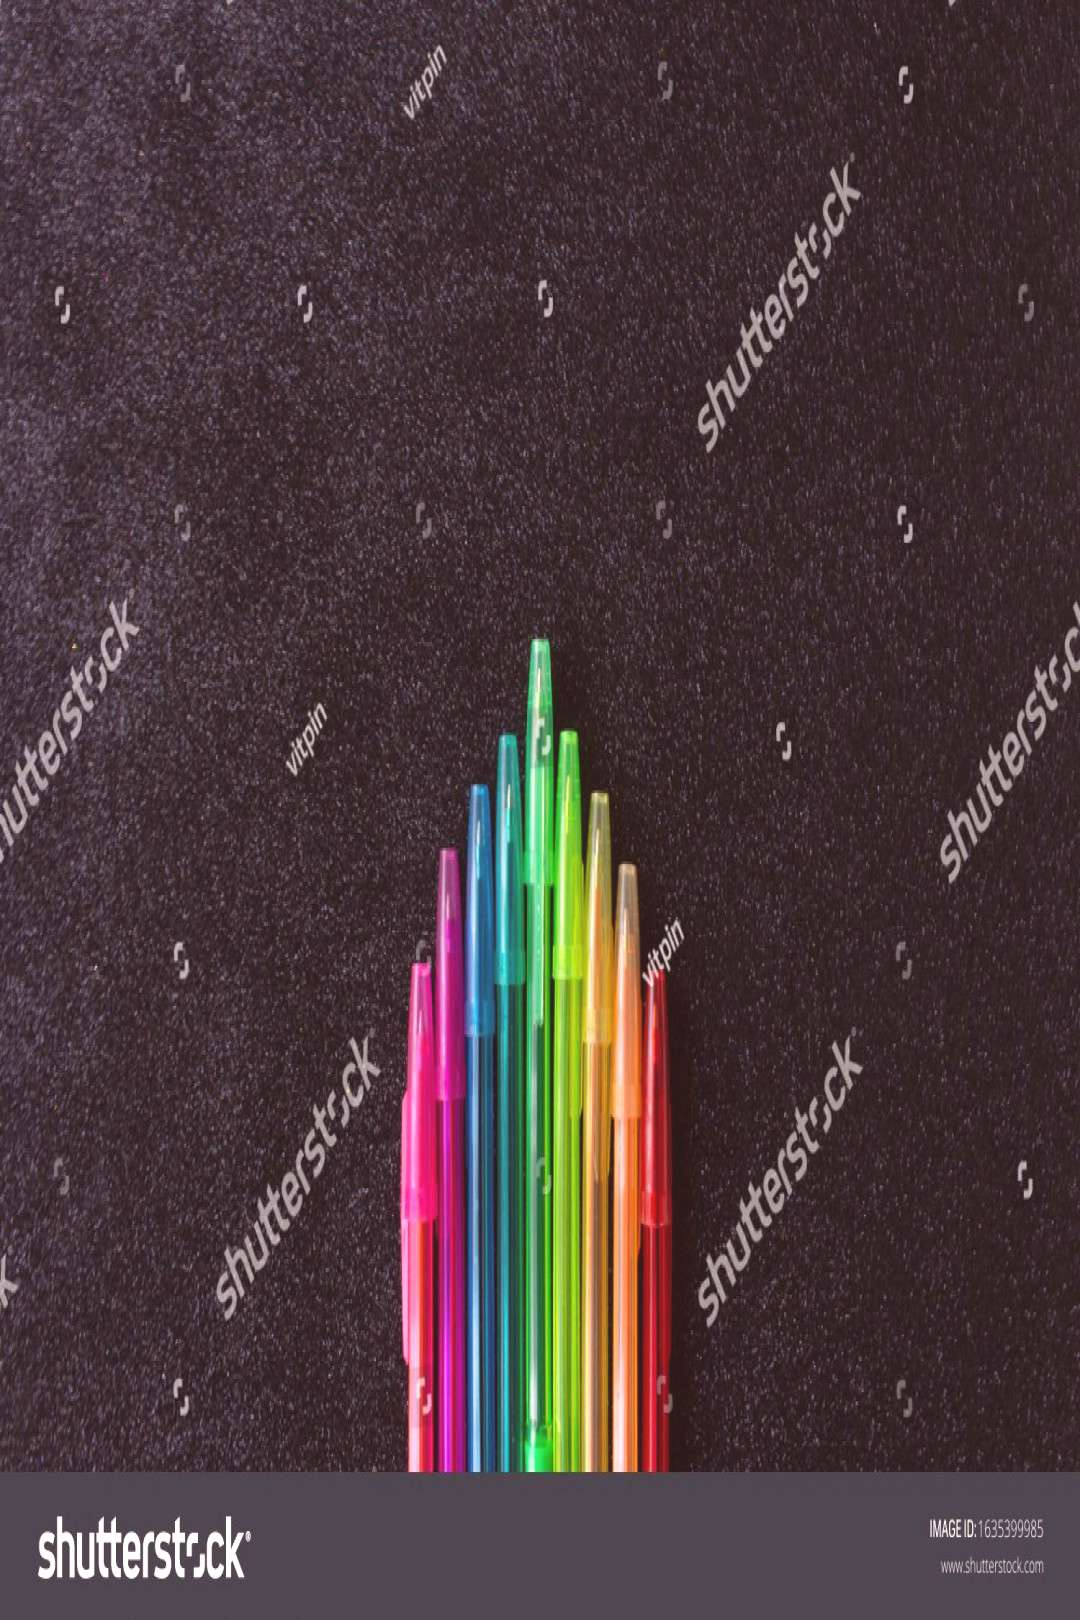 Color pens all the colors of the the rainbow. Isolated object. Black sparcle background. ,